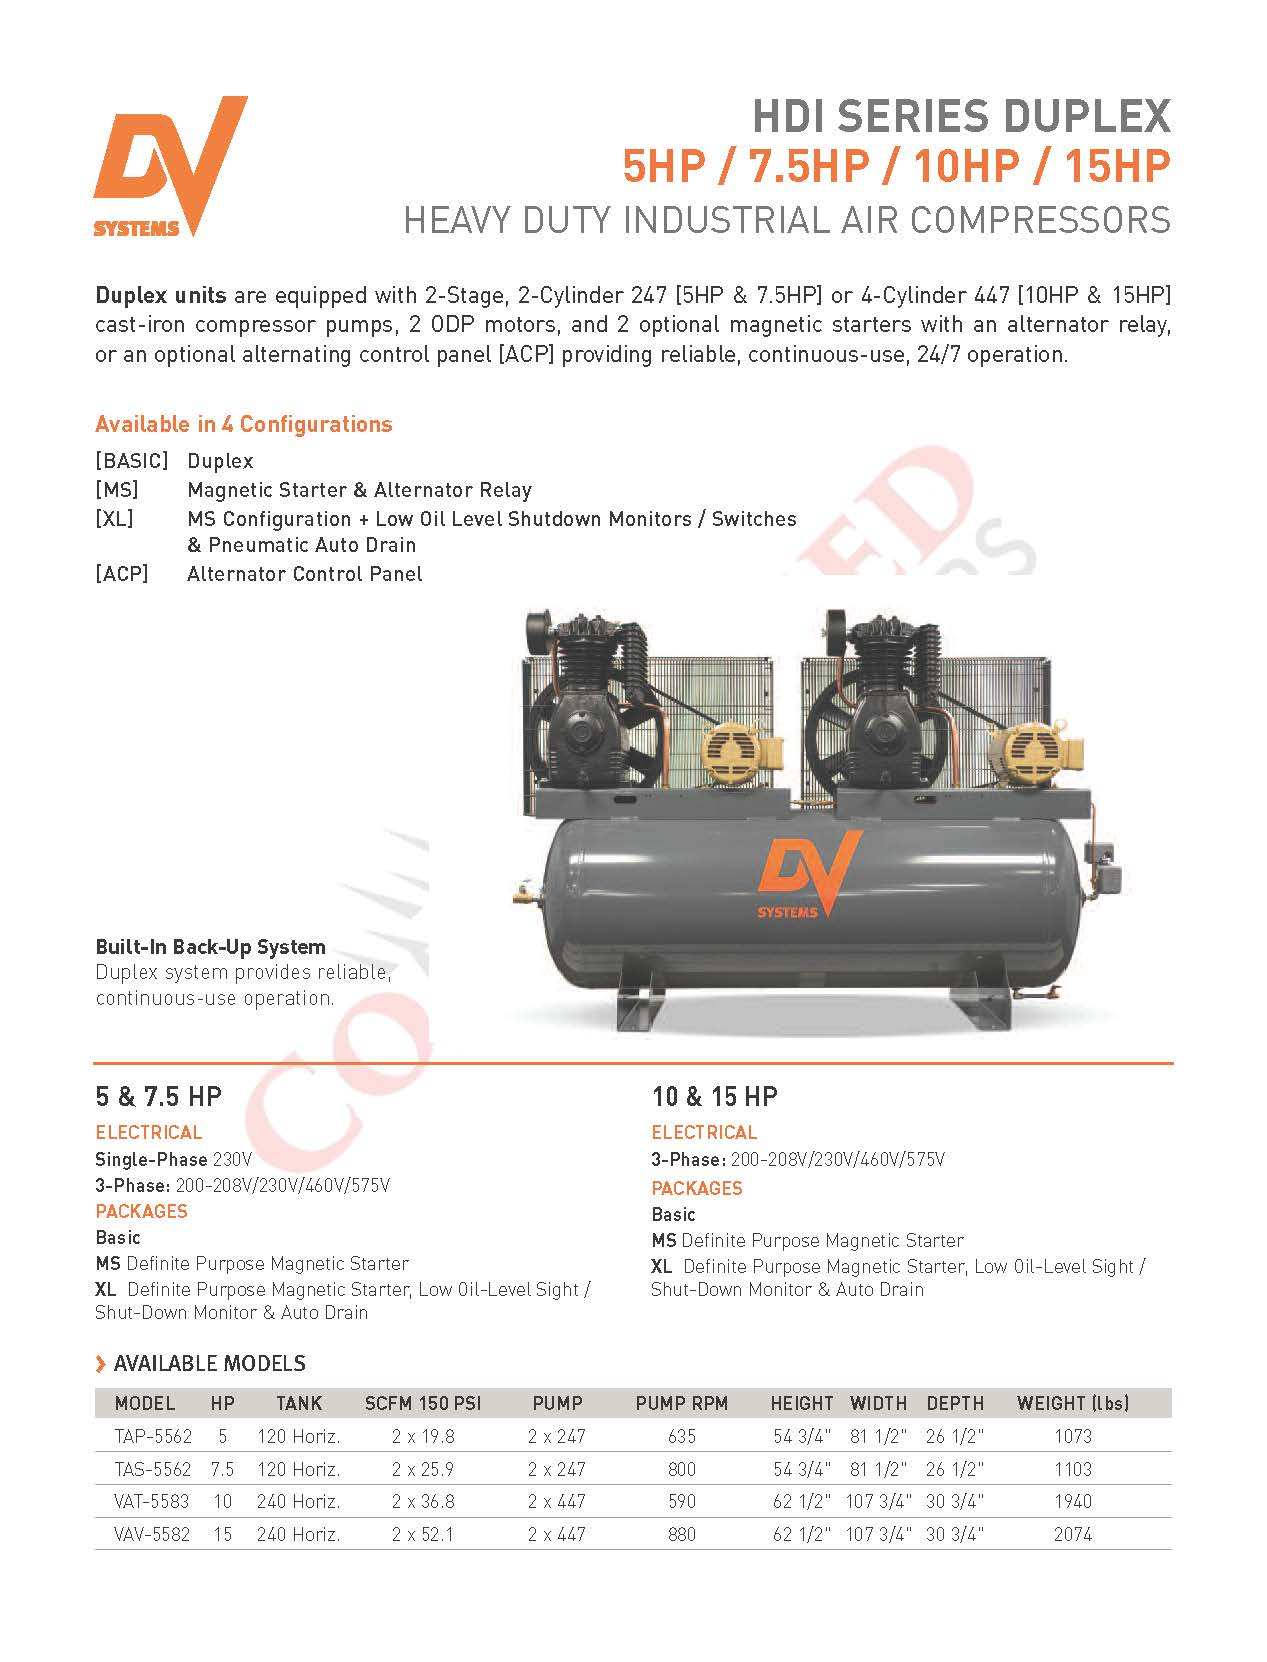 Dv Systems Vav 5062 15hp Heavy Duty Industrial Reciprocating Air Oli Rotary 2t R30 Chick Here For Hdi Compressors Brochure